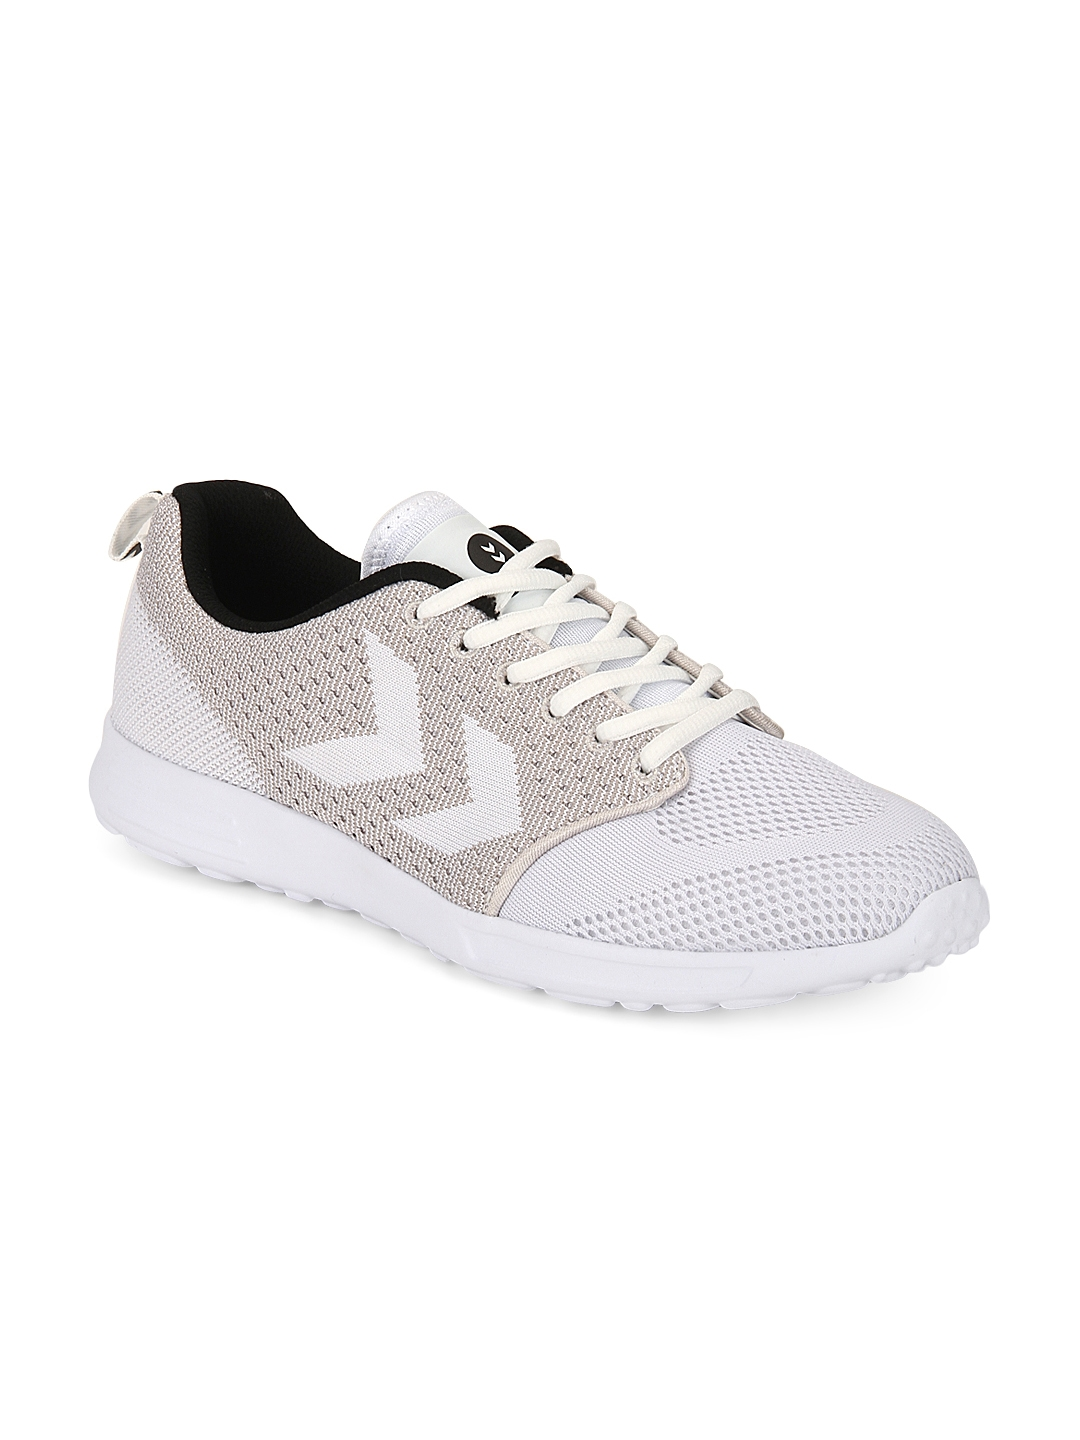 Zeroknit Buy Hummel Shoes Sports For White Ii Unisex vgqrxtwpBg